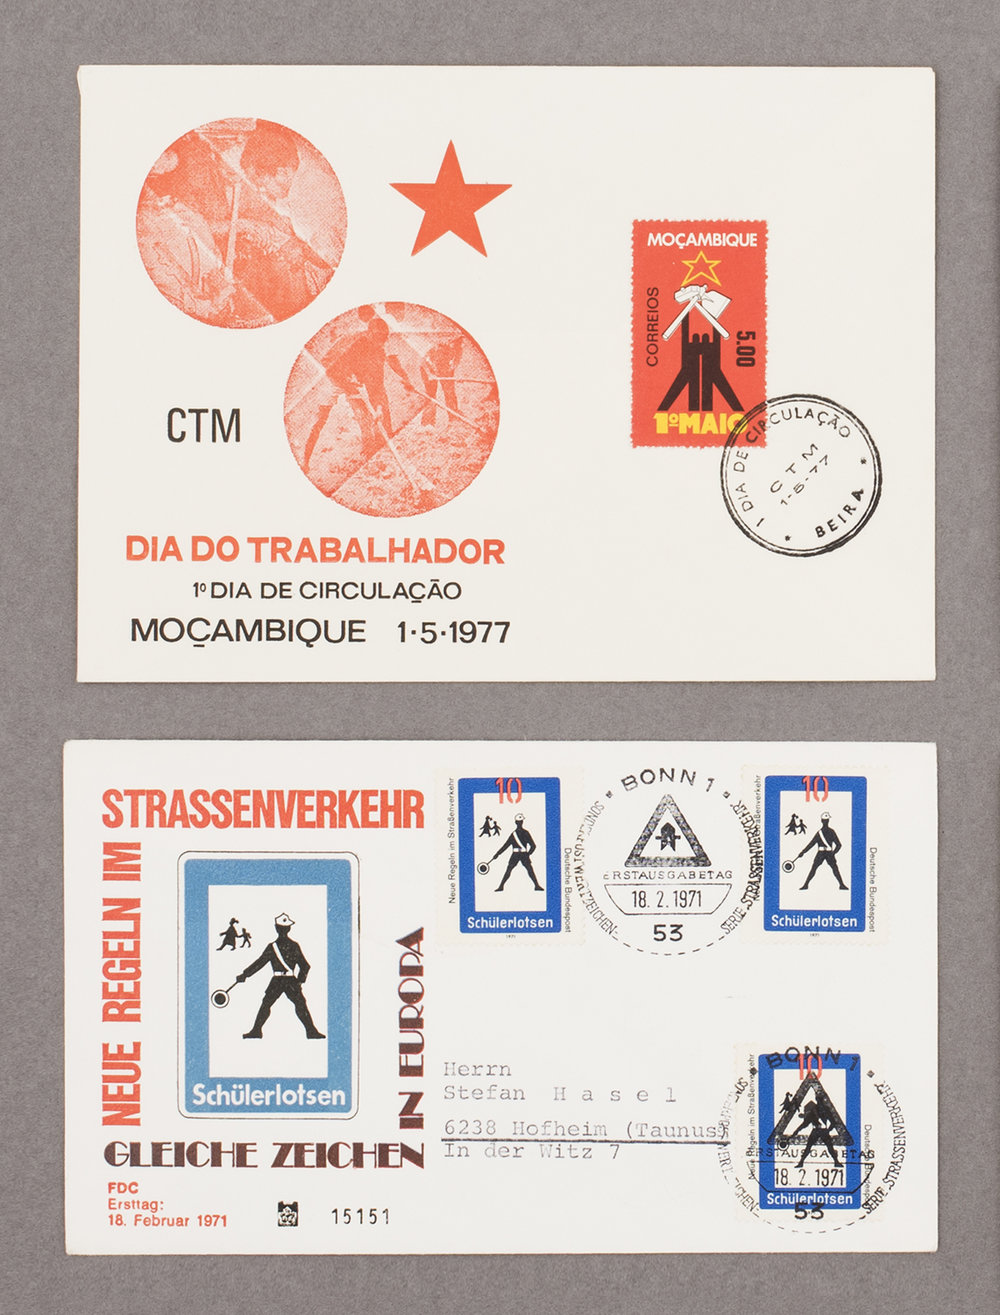 First day covers from Mozambique and Germany, 1971 & 1977, from Feira de Ladra, Lisbon